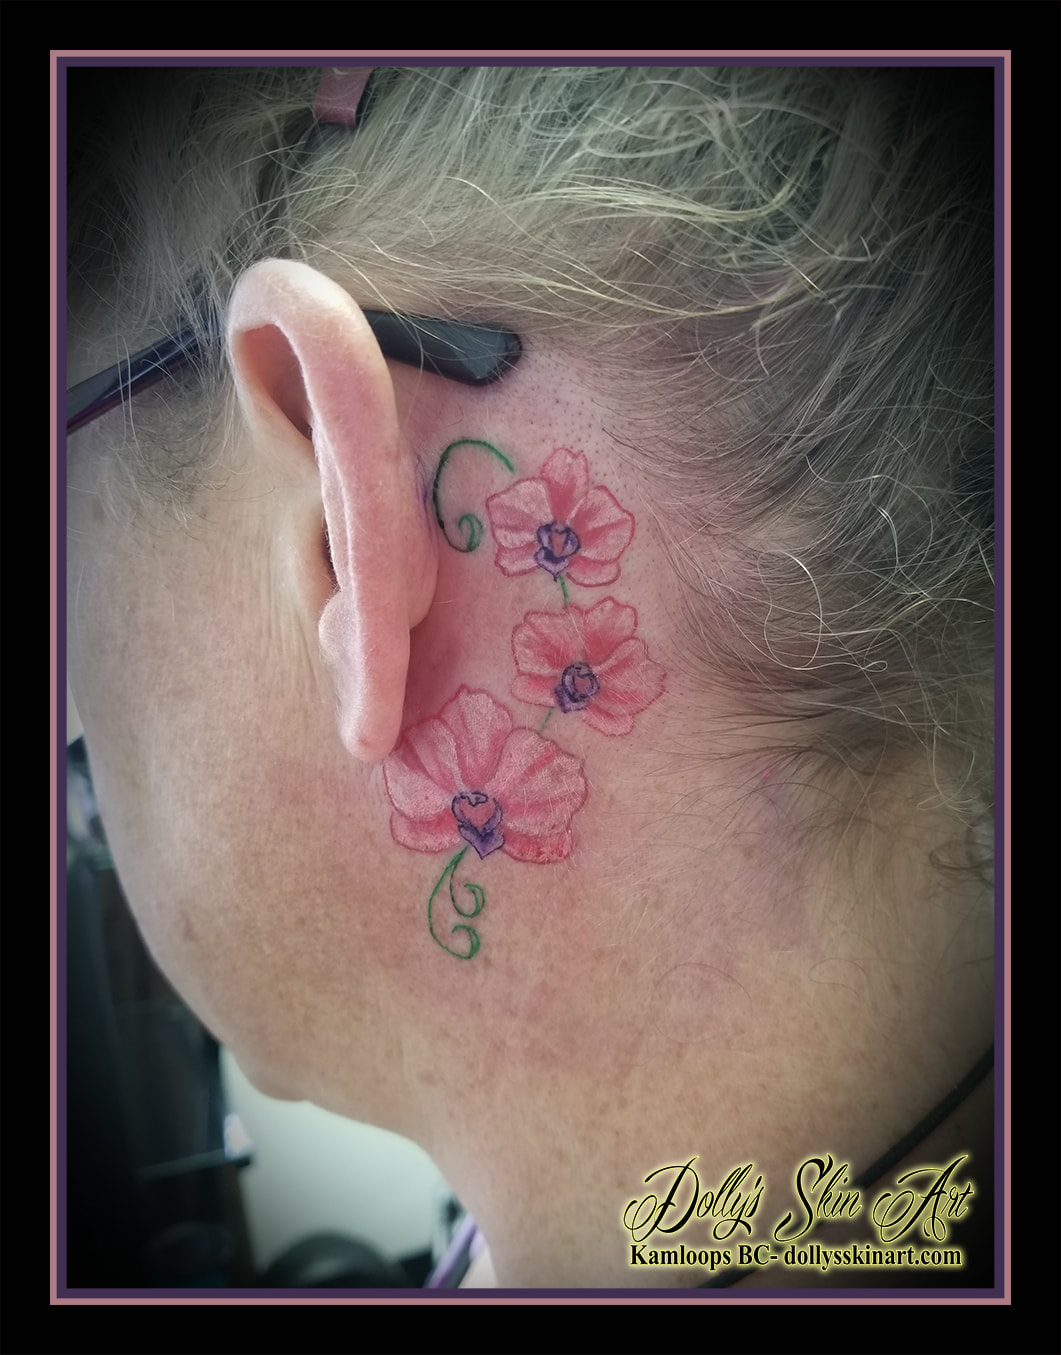 orchid flower small behind ear three orchids pink green purple white shaded colour tattoo kamloops tattoo dolly's skin art